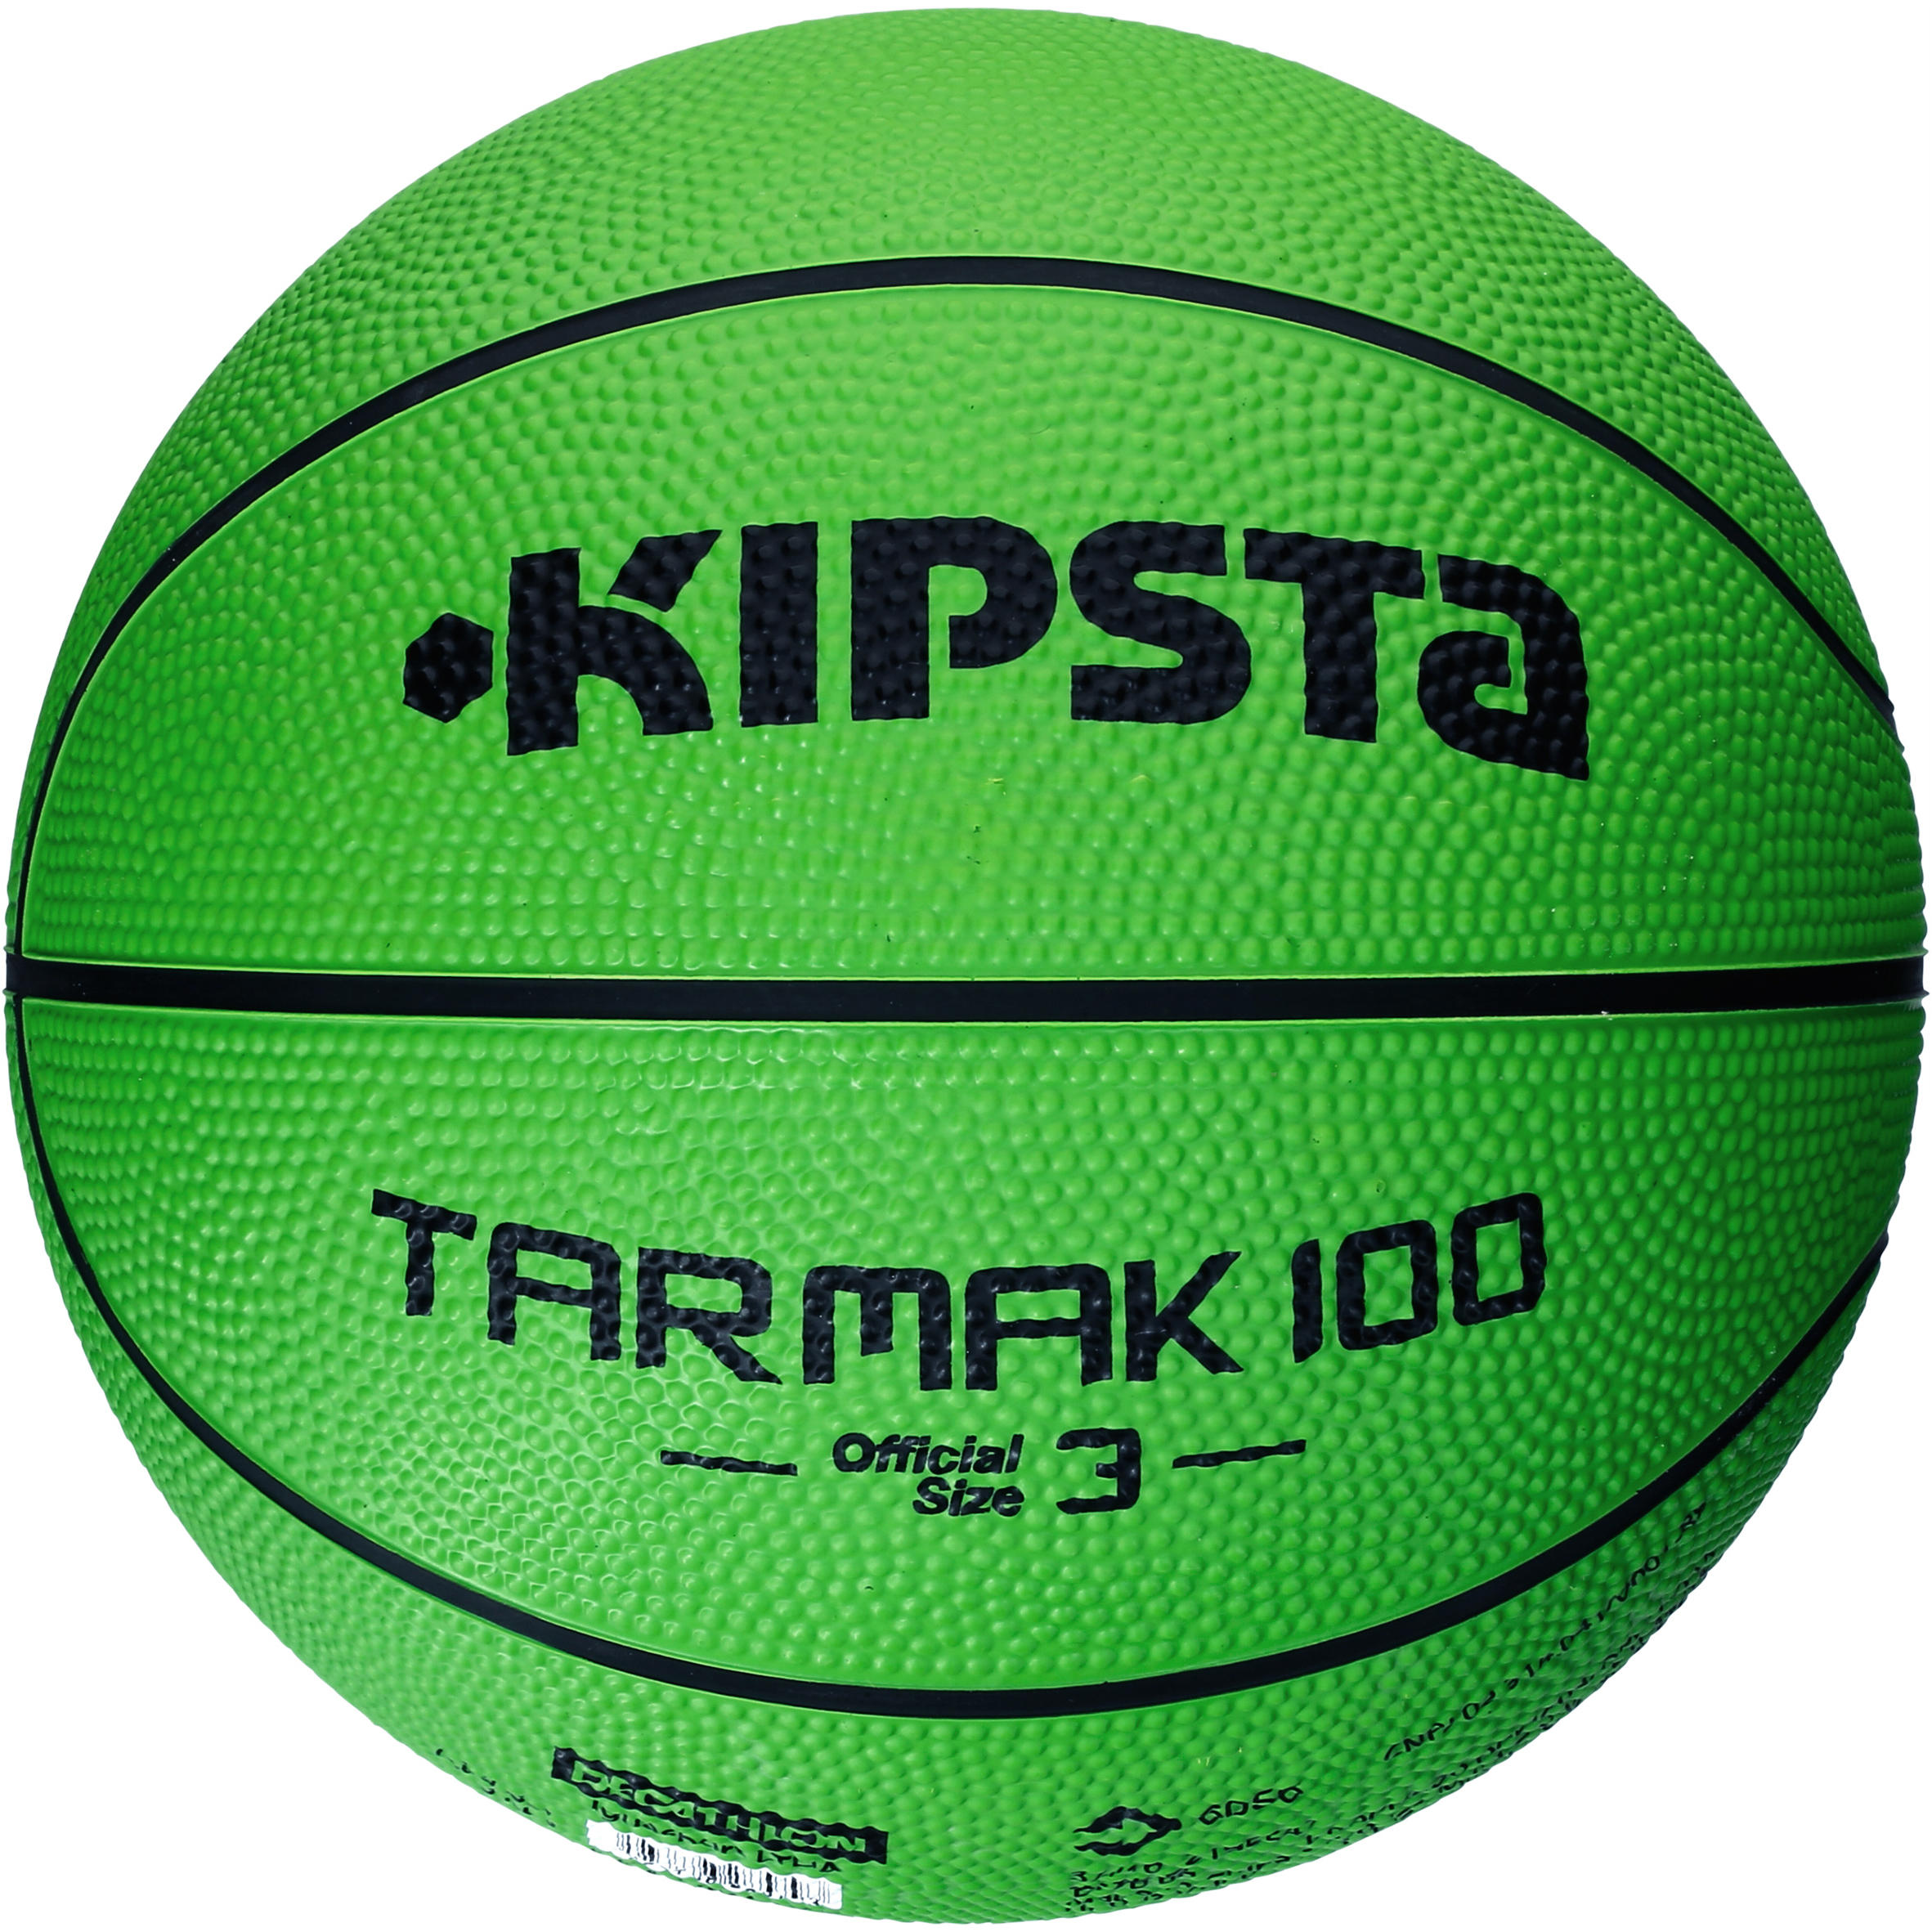 Tarmak 100 Kids Size 3 Basketball - Green